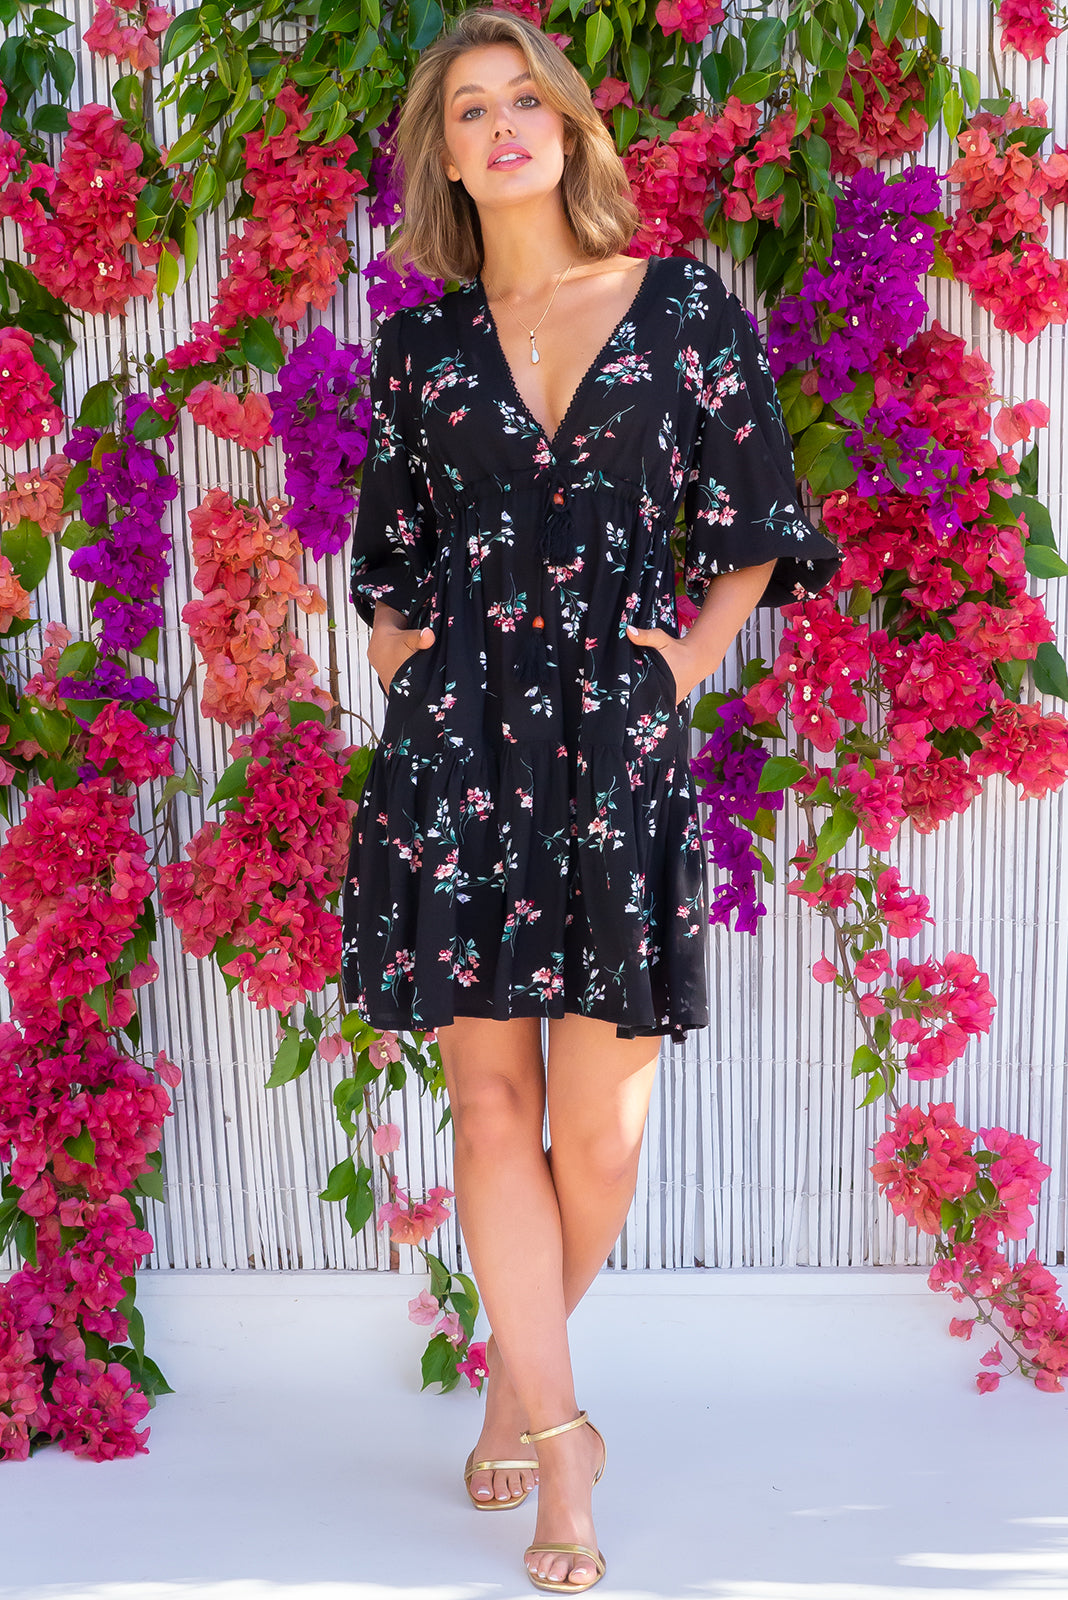 The Sexy dress, Mariette Norton Noir Dress features puff sleeves, side pockets, adjustable drawstring waist and 100% rayon in black base with sweet floral print.